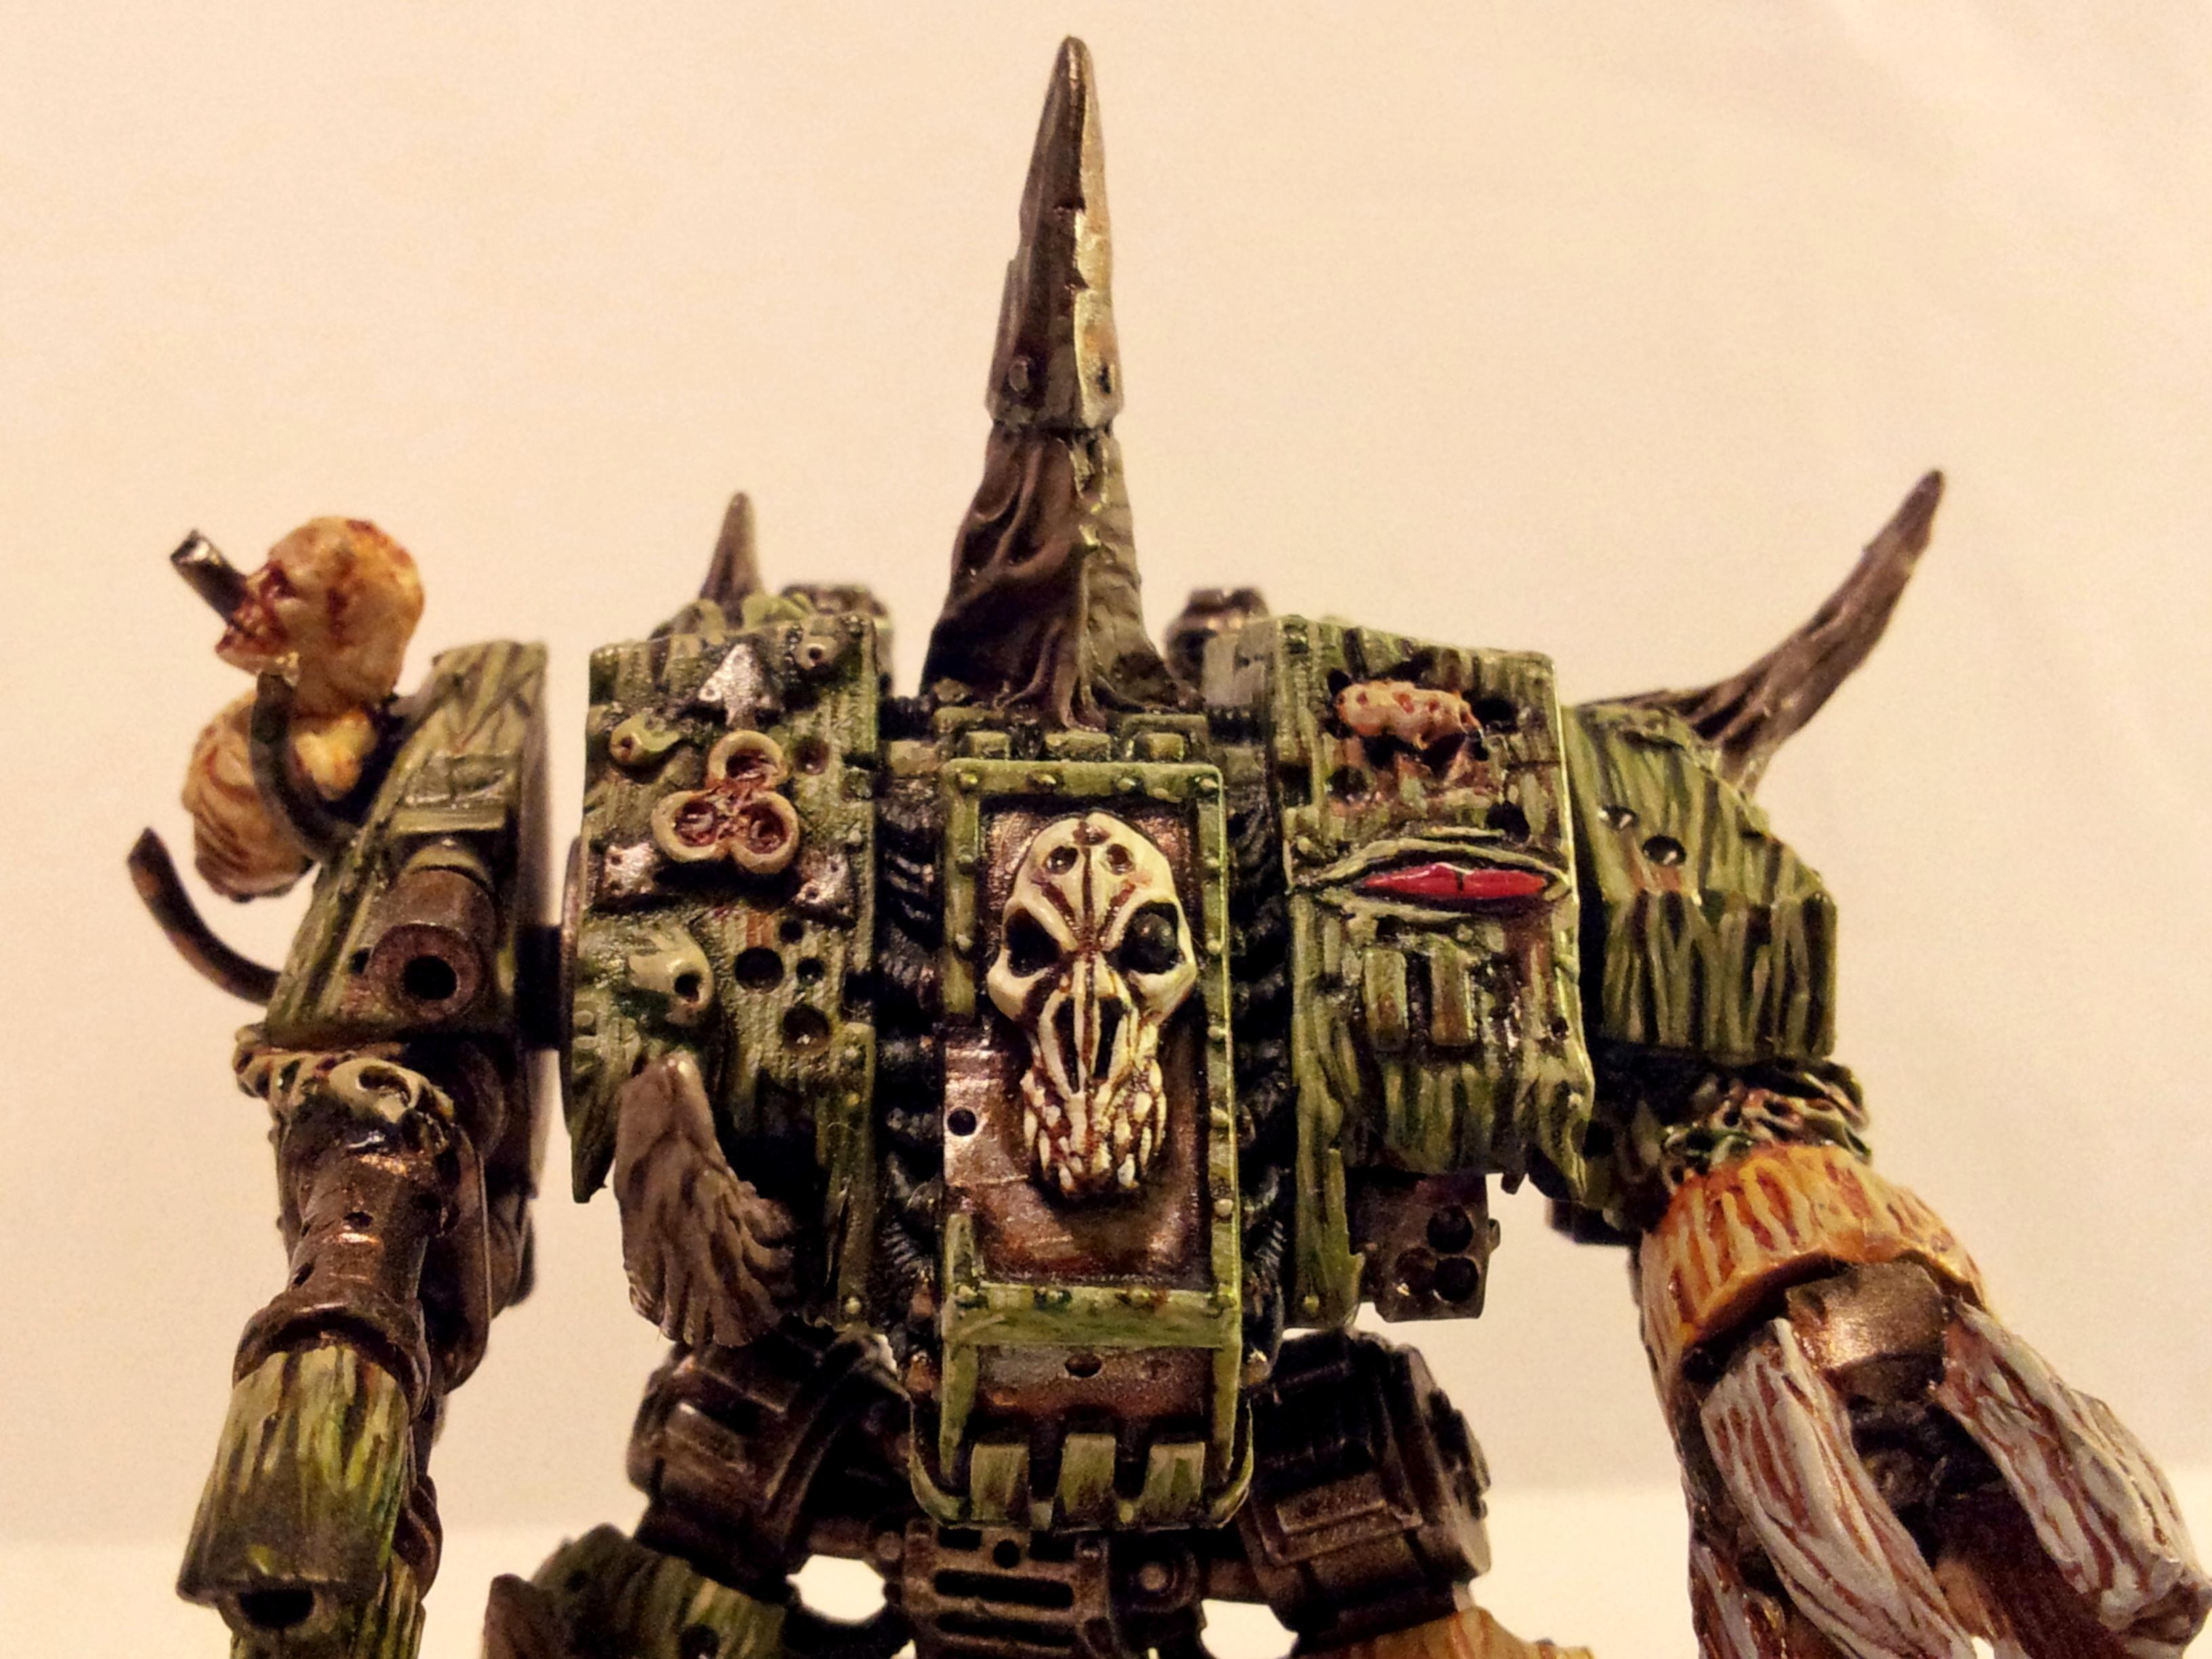 Chaos Dreadnought, Chaos Space Marines, Corrupted, Death Guard, Dreadnought, Nurgle, Plague Marines